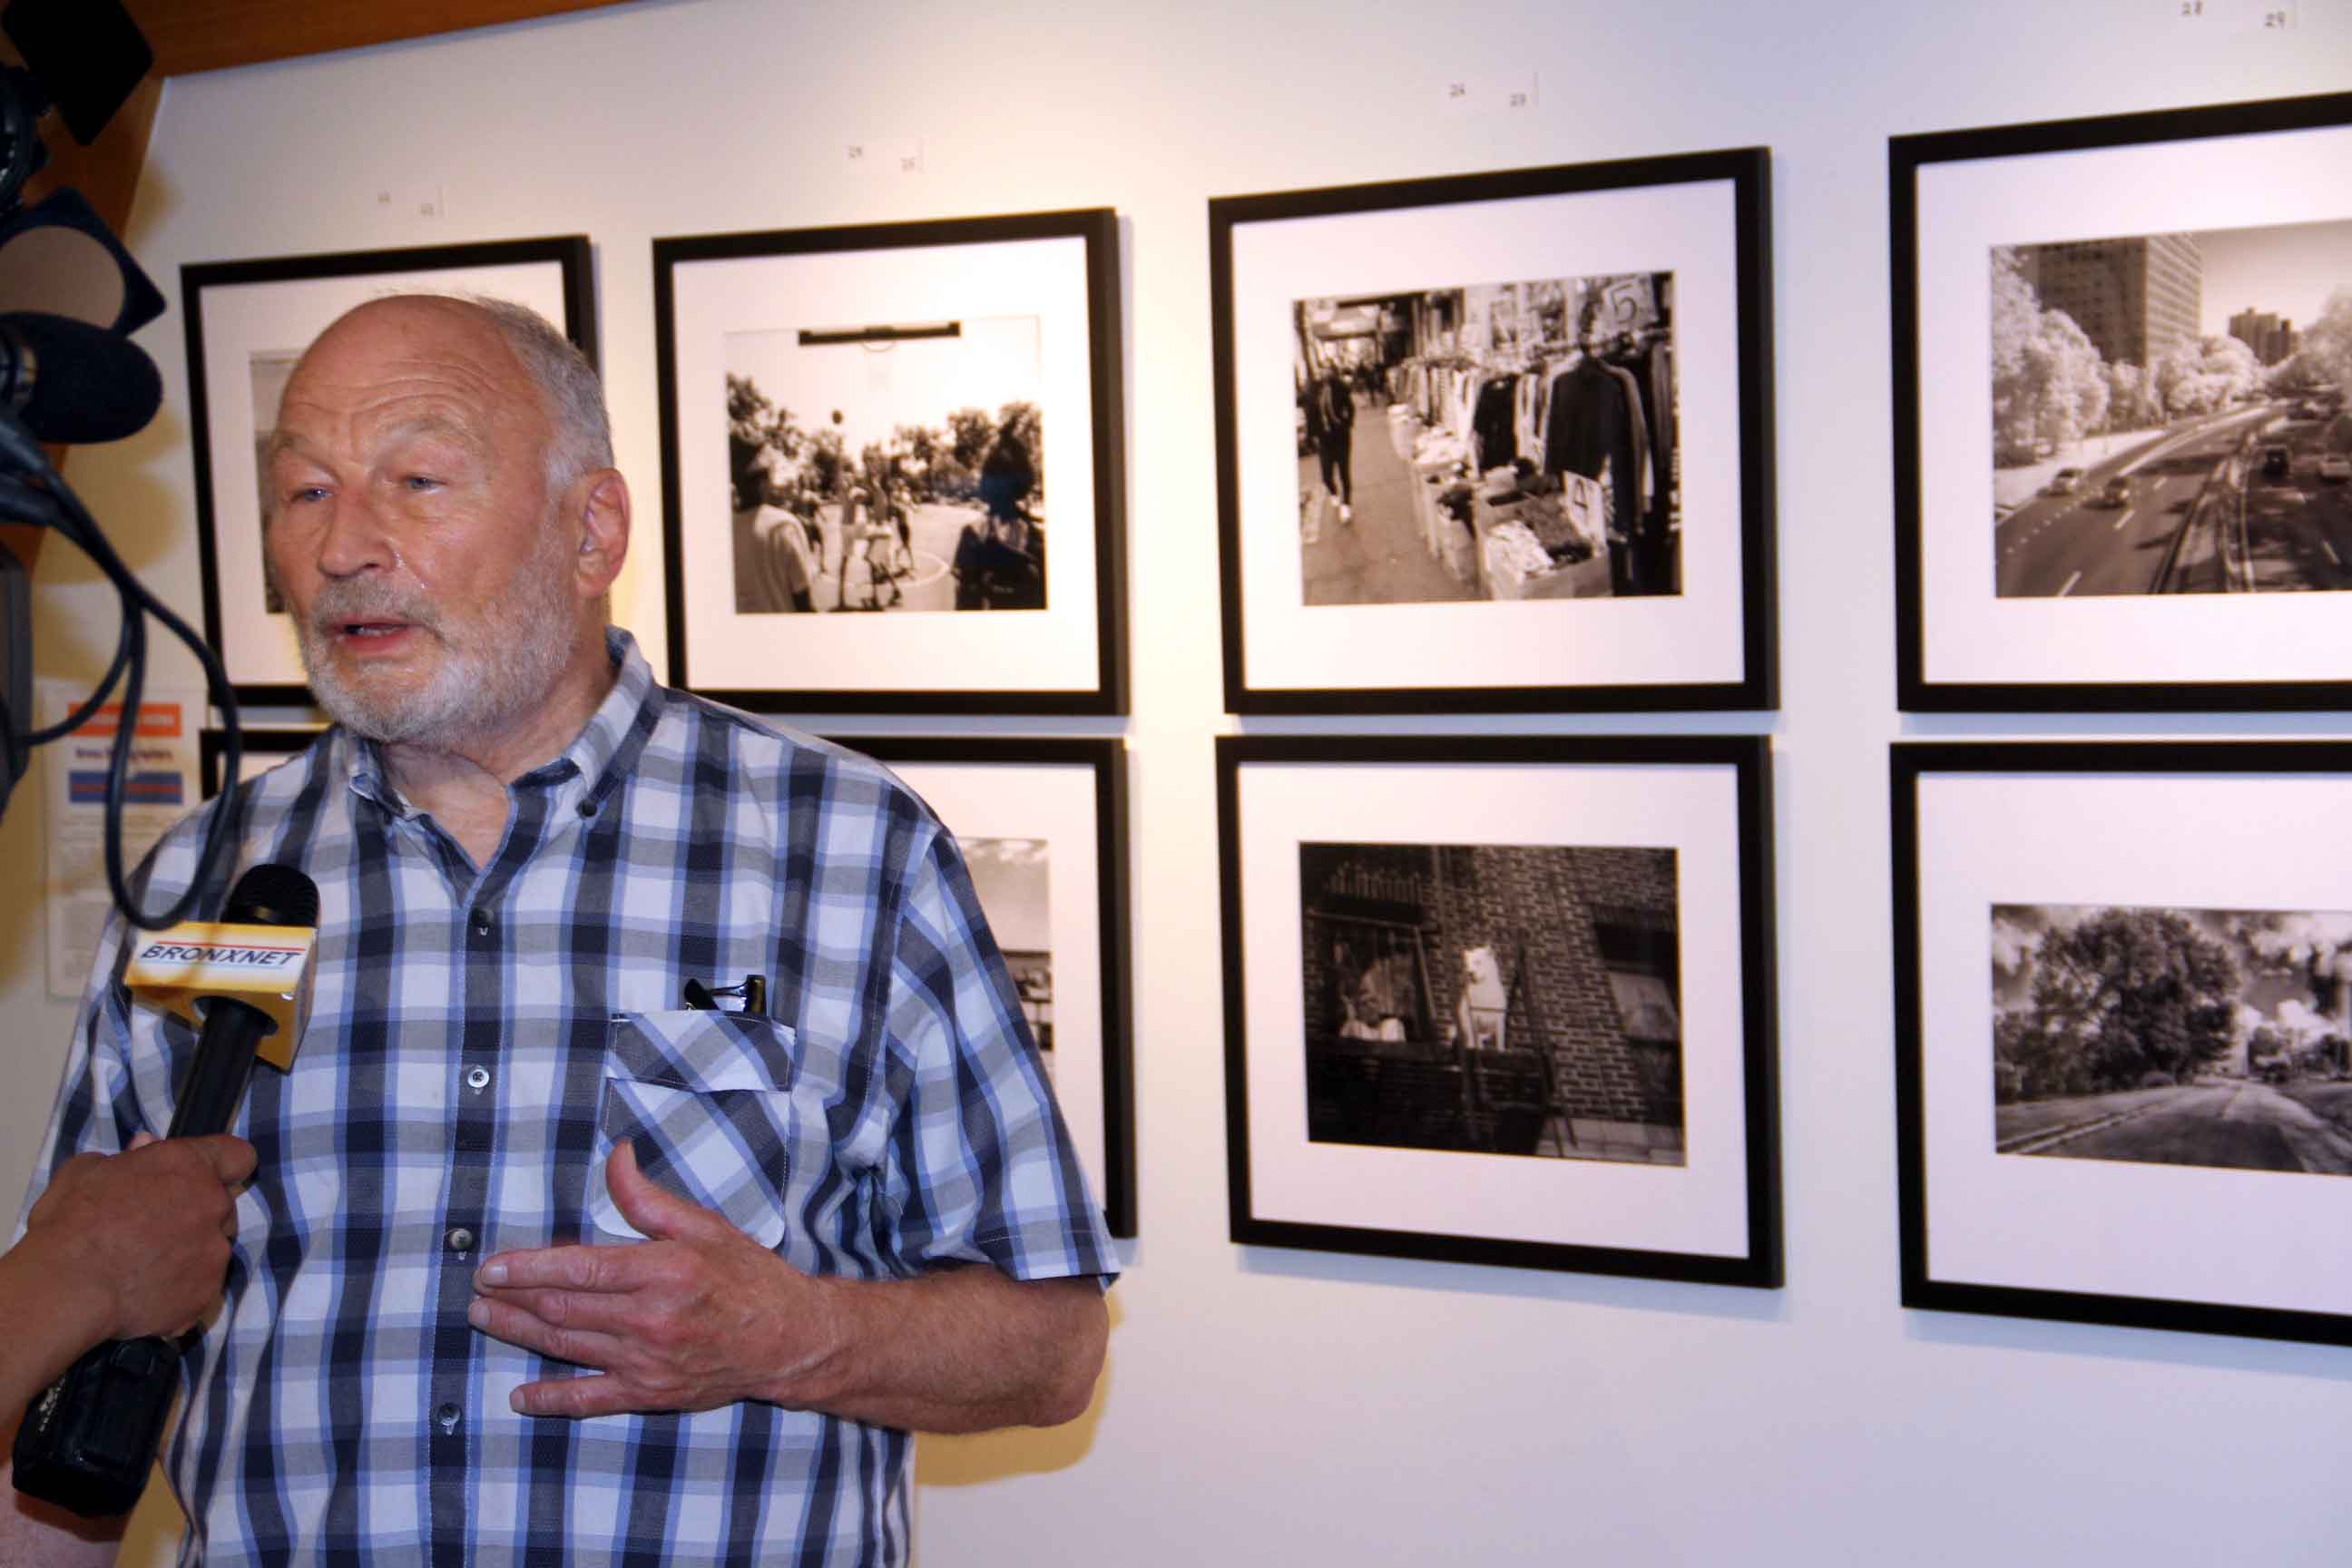 Photographer and organizer Walter Pofeldt is interviewed next to some of his work. Photo by David Greene